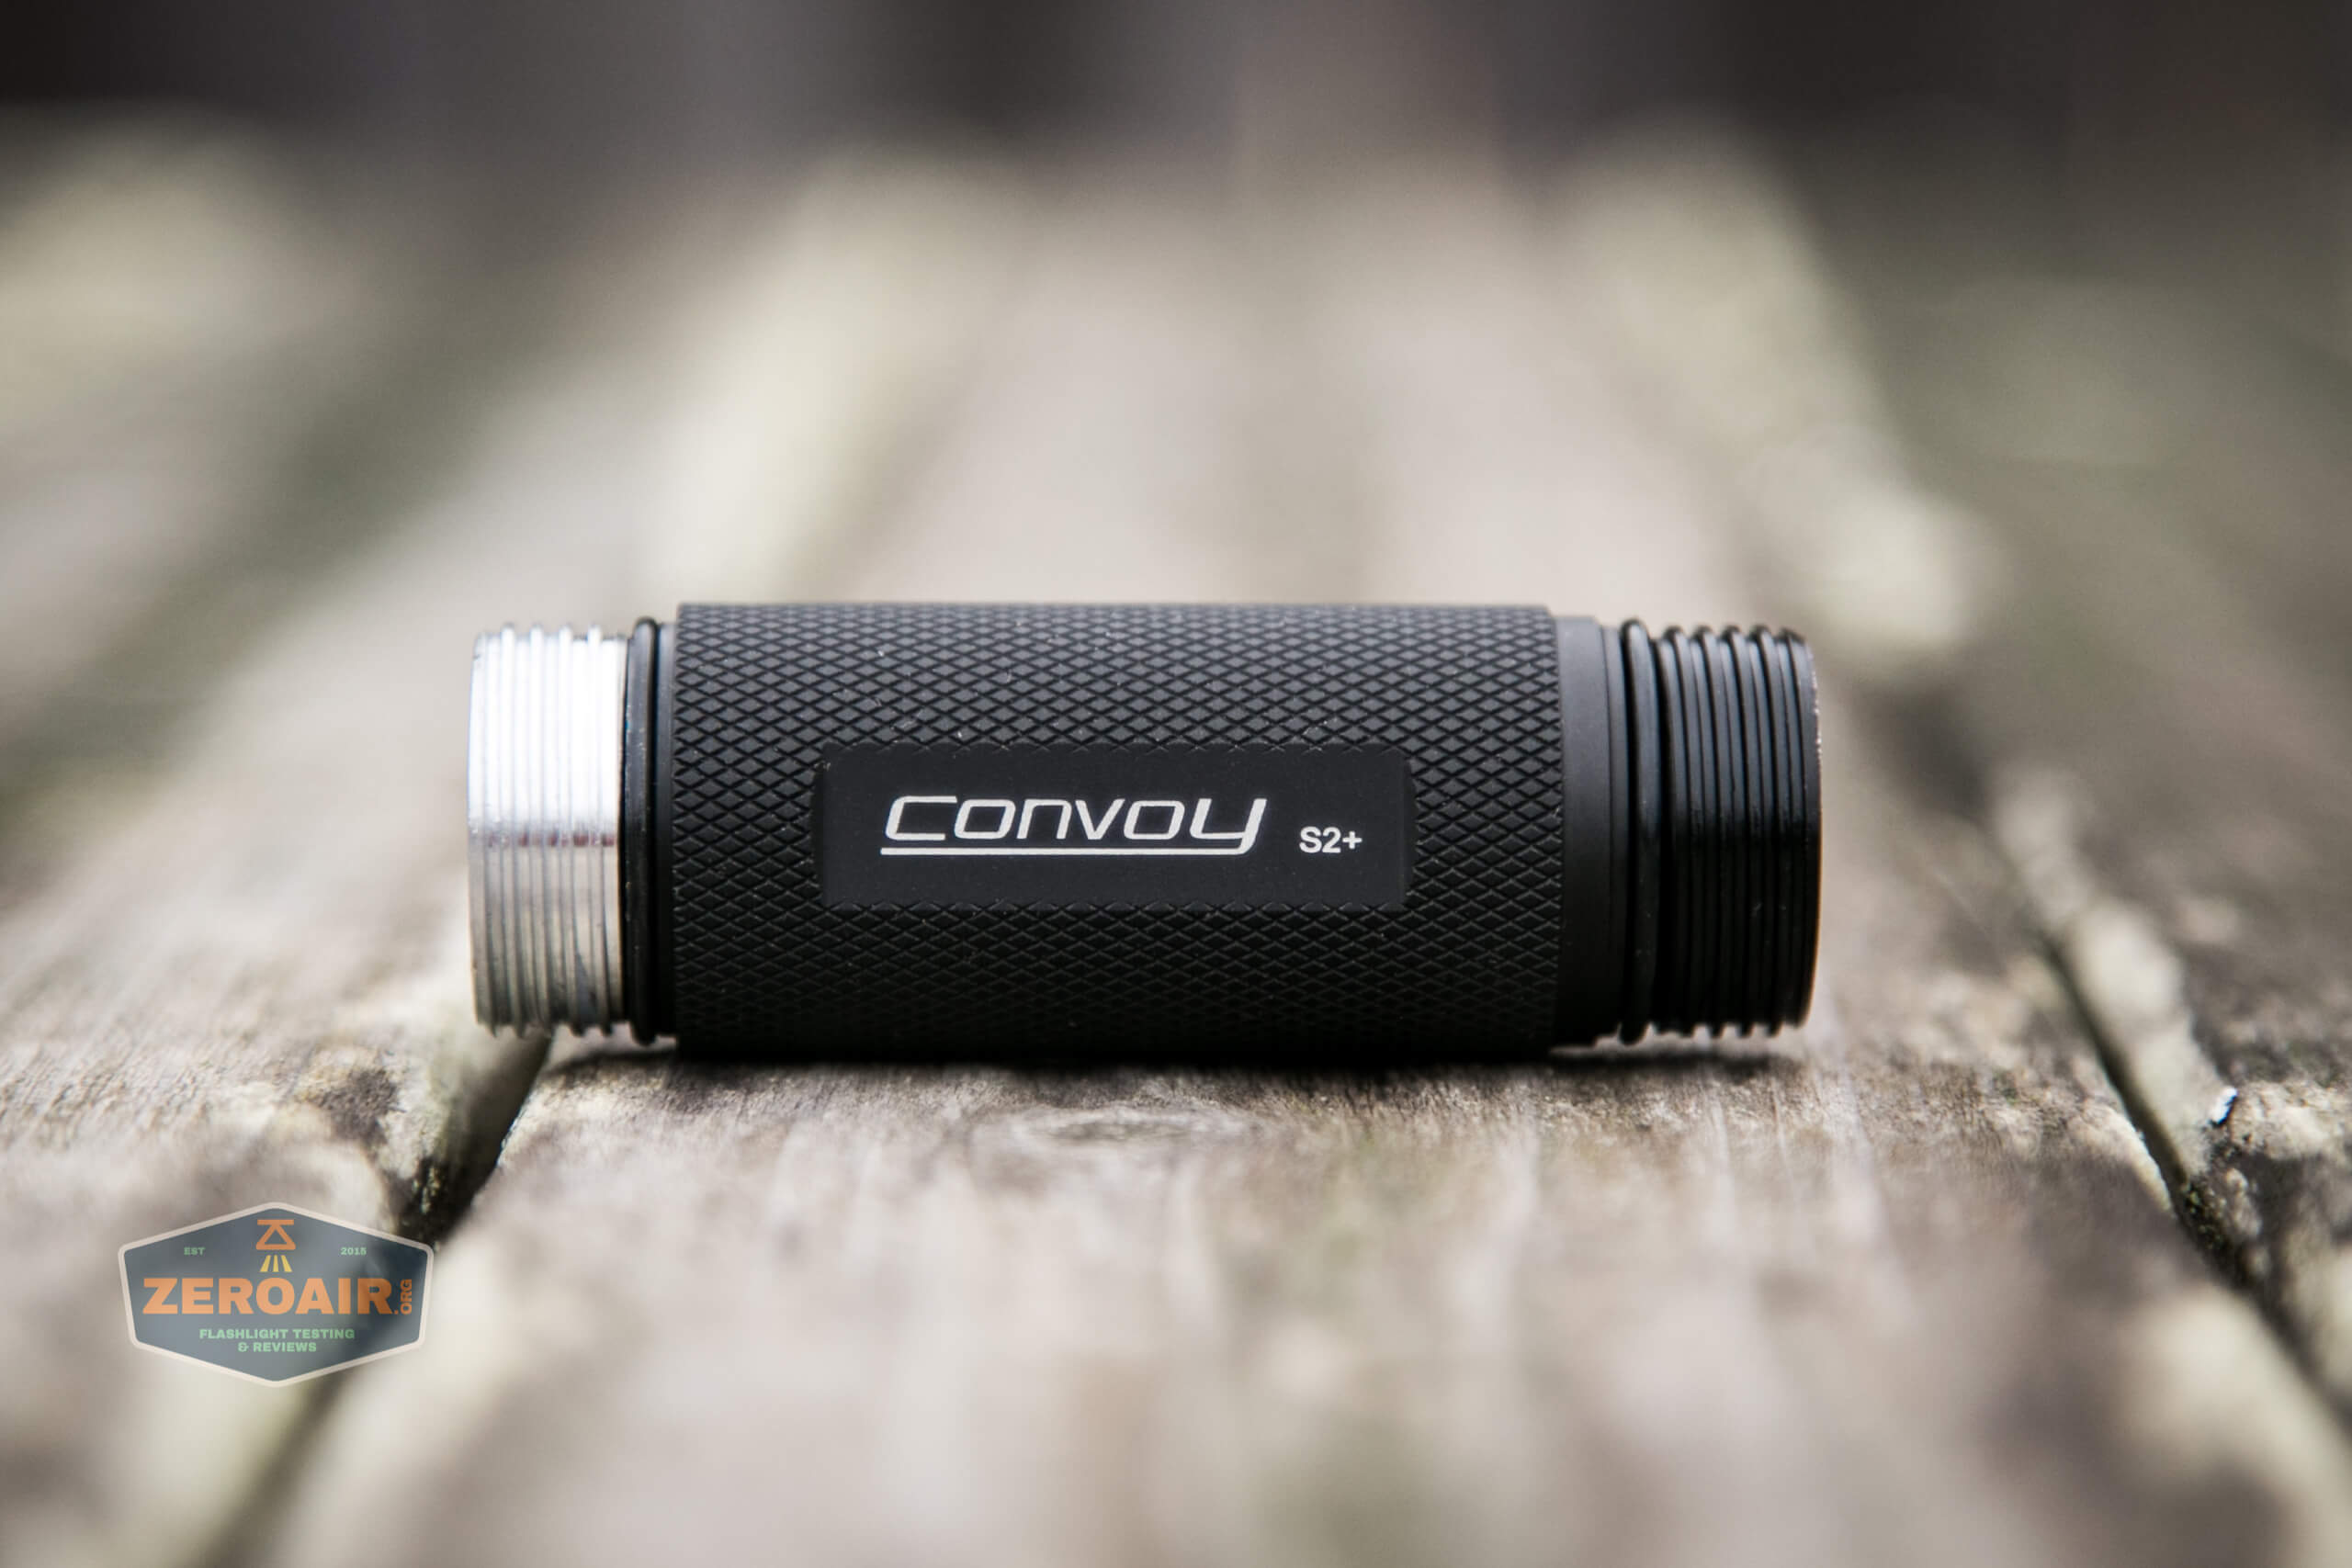 convoy s2+ uv flashlight 18650 cell tube